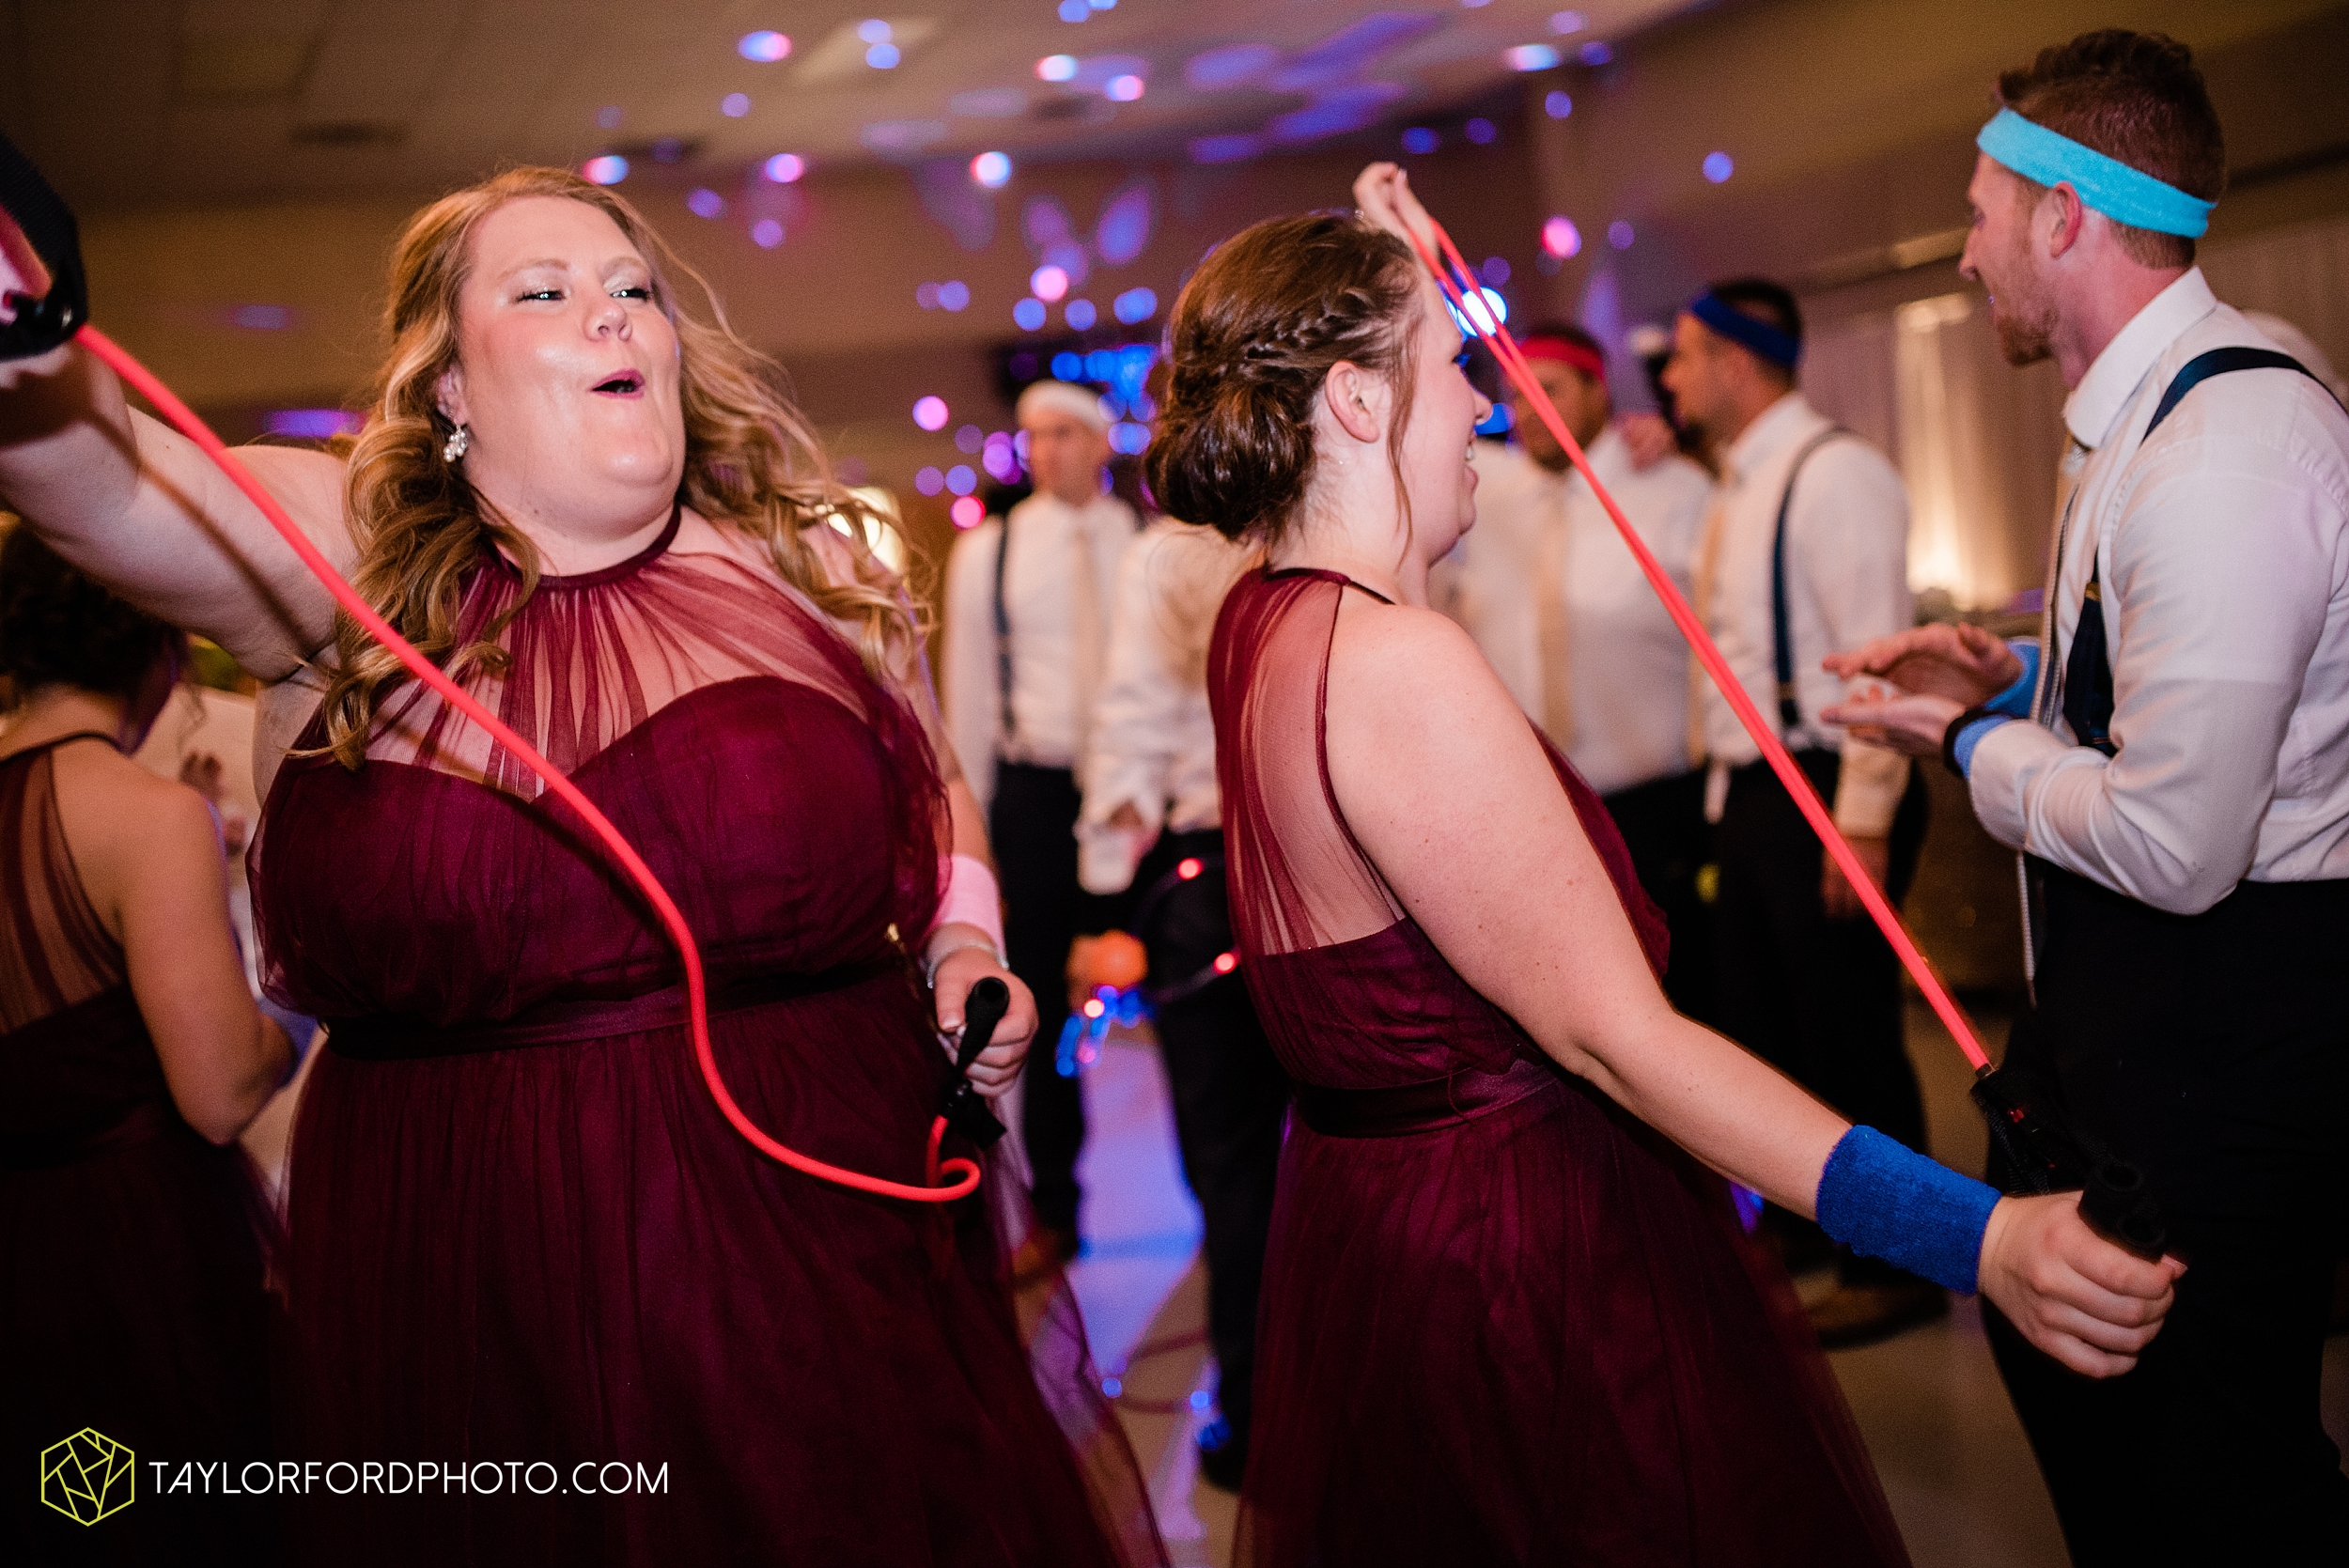 gayle-rayman-mike-steele-ottoville-ohio-wedding-immaculate-conception-parish-center-wedding-sycamore-lake-winery-wannamachers-photographer-taylor-ford-photography_0441.jpg